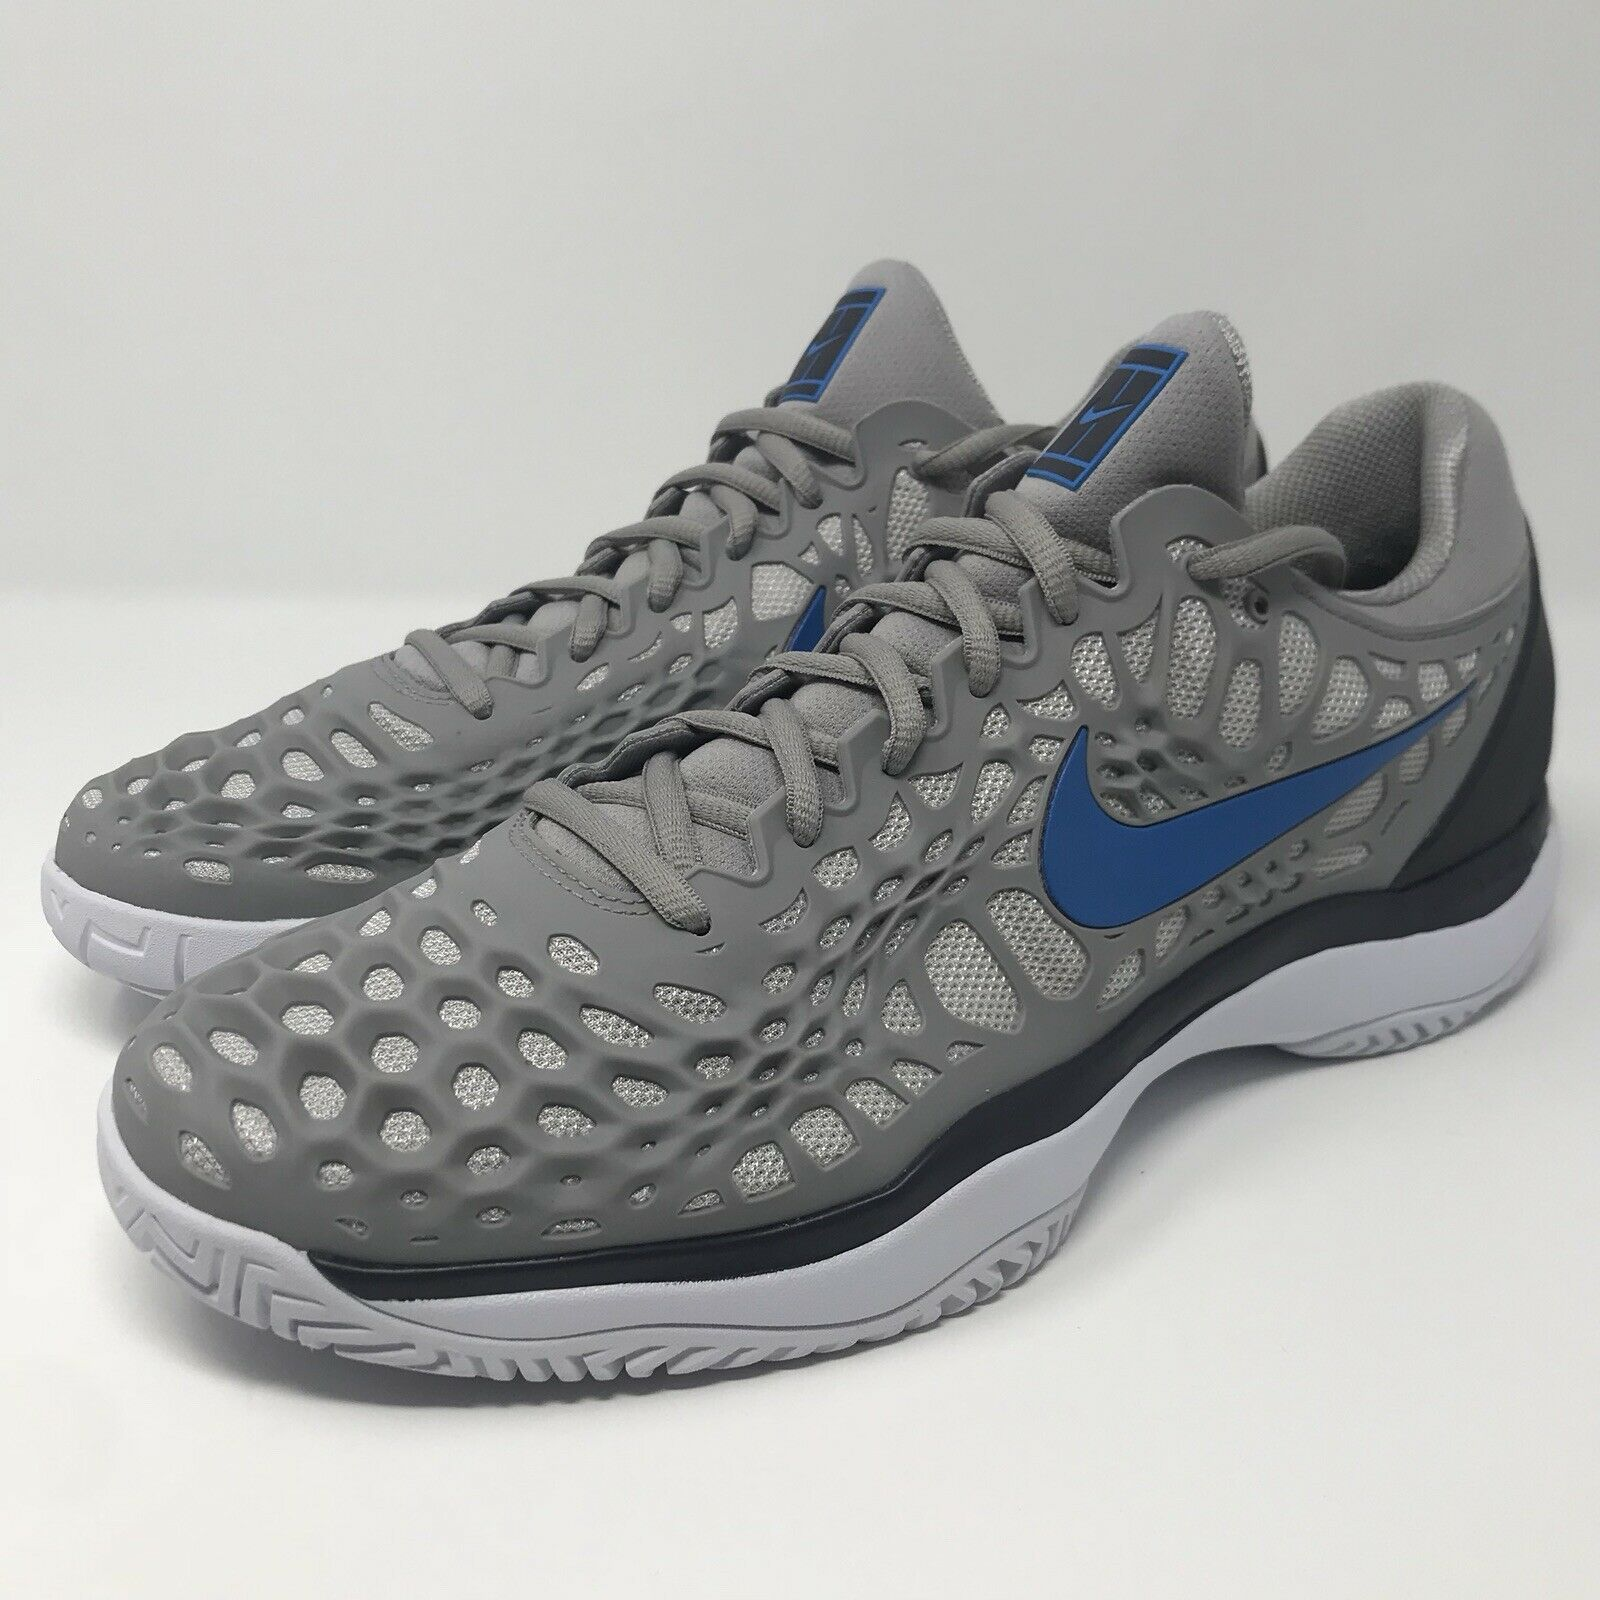 Nike Air Zoom Cage 3 Hard Court Tennis shoes 918193-049 Grey blueee Men Size 11.5